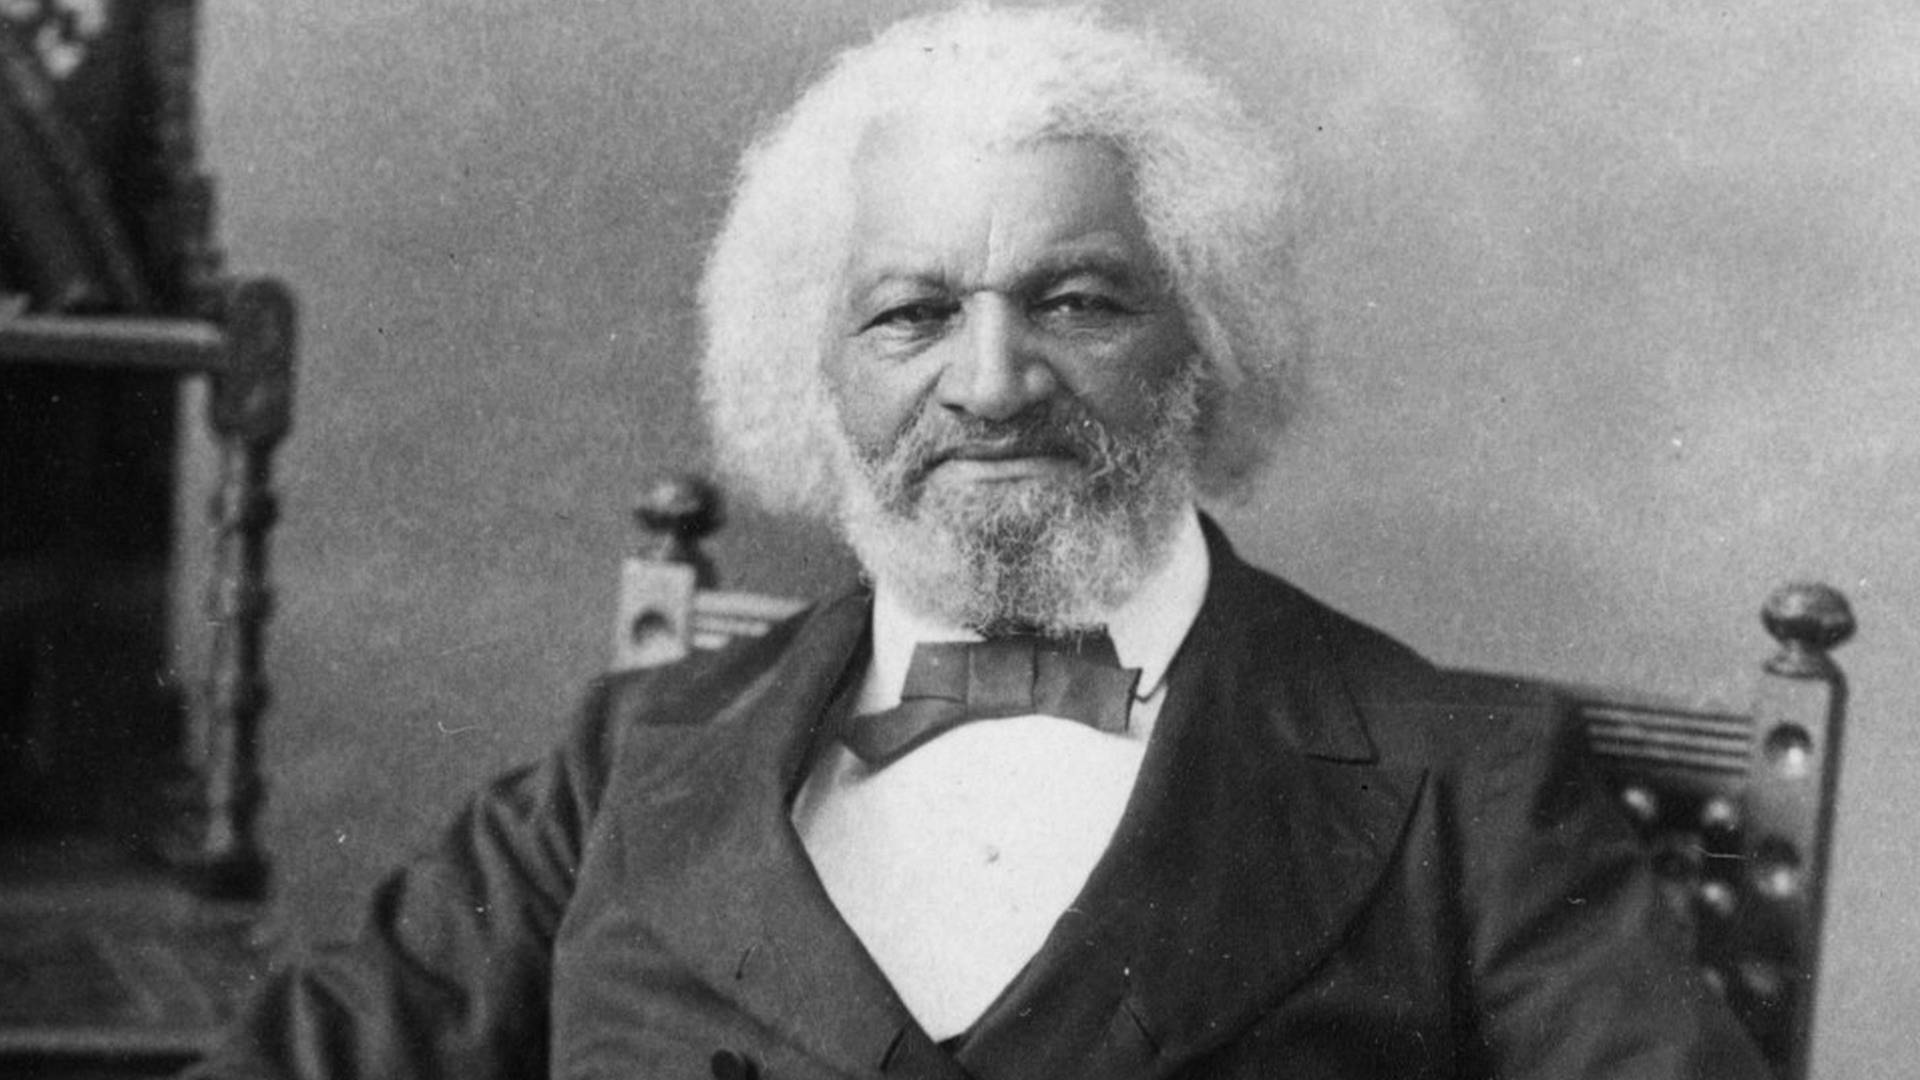 frederick douglass Frederick douglass: frederick douglass, african american who was one of the most eminent human rights leaders of the 19th century.